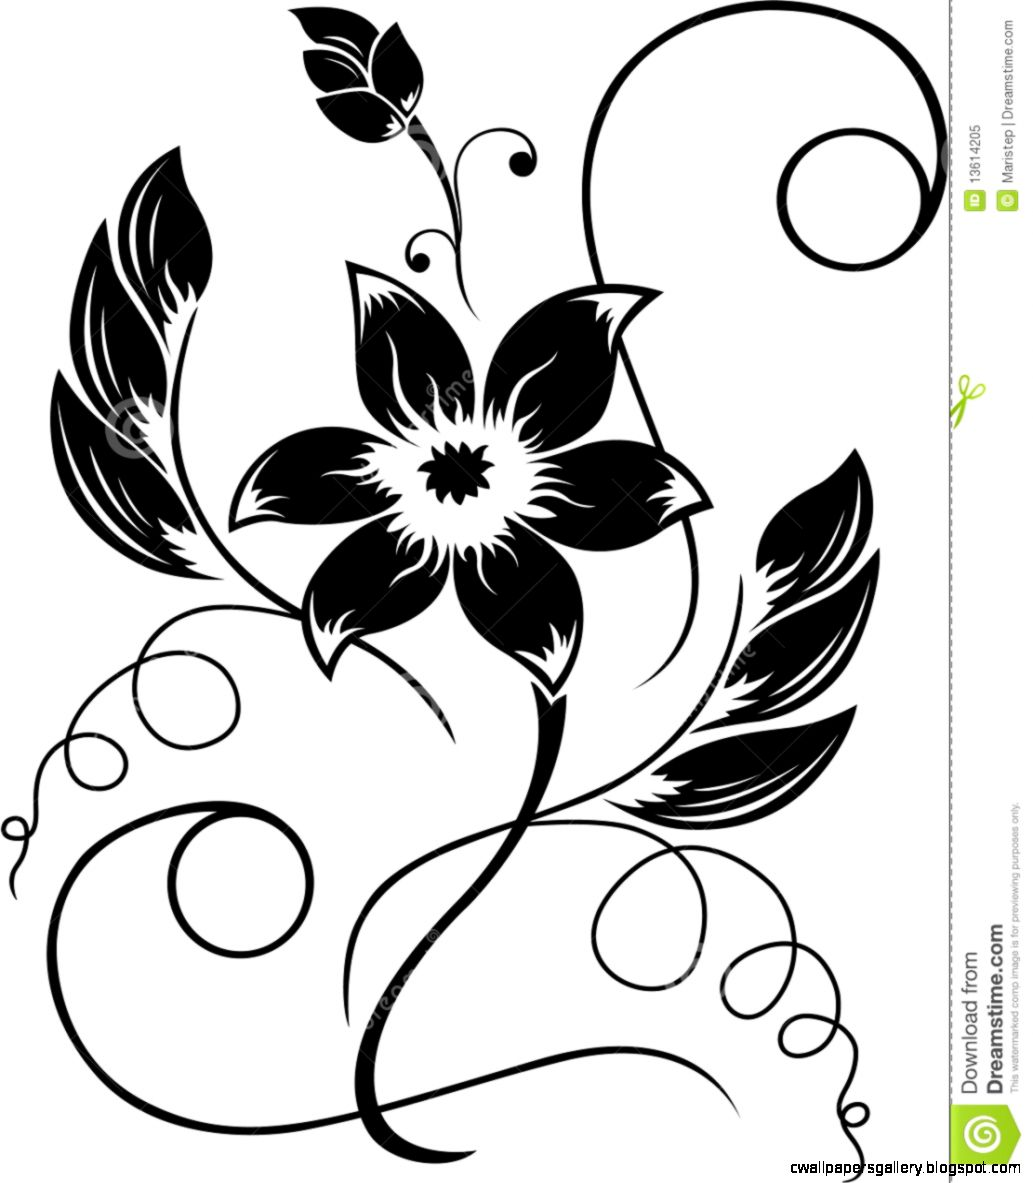 Simple flower black and white drawing wallpapers gallery view original size black and white flower drawing clipart panda free clipart images mightylinksfo Choice Image